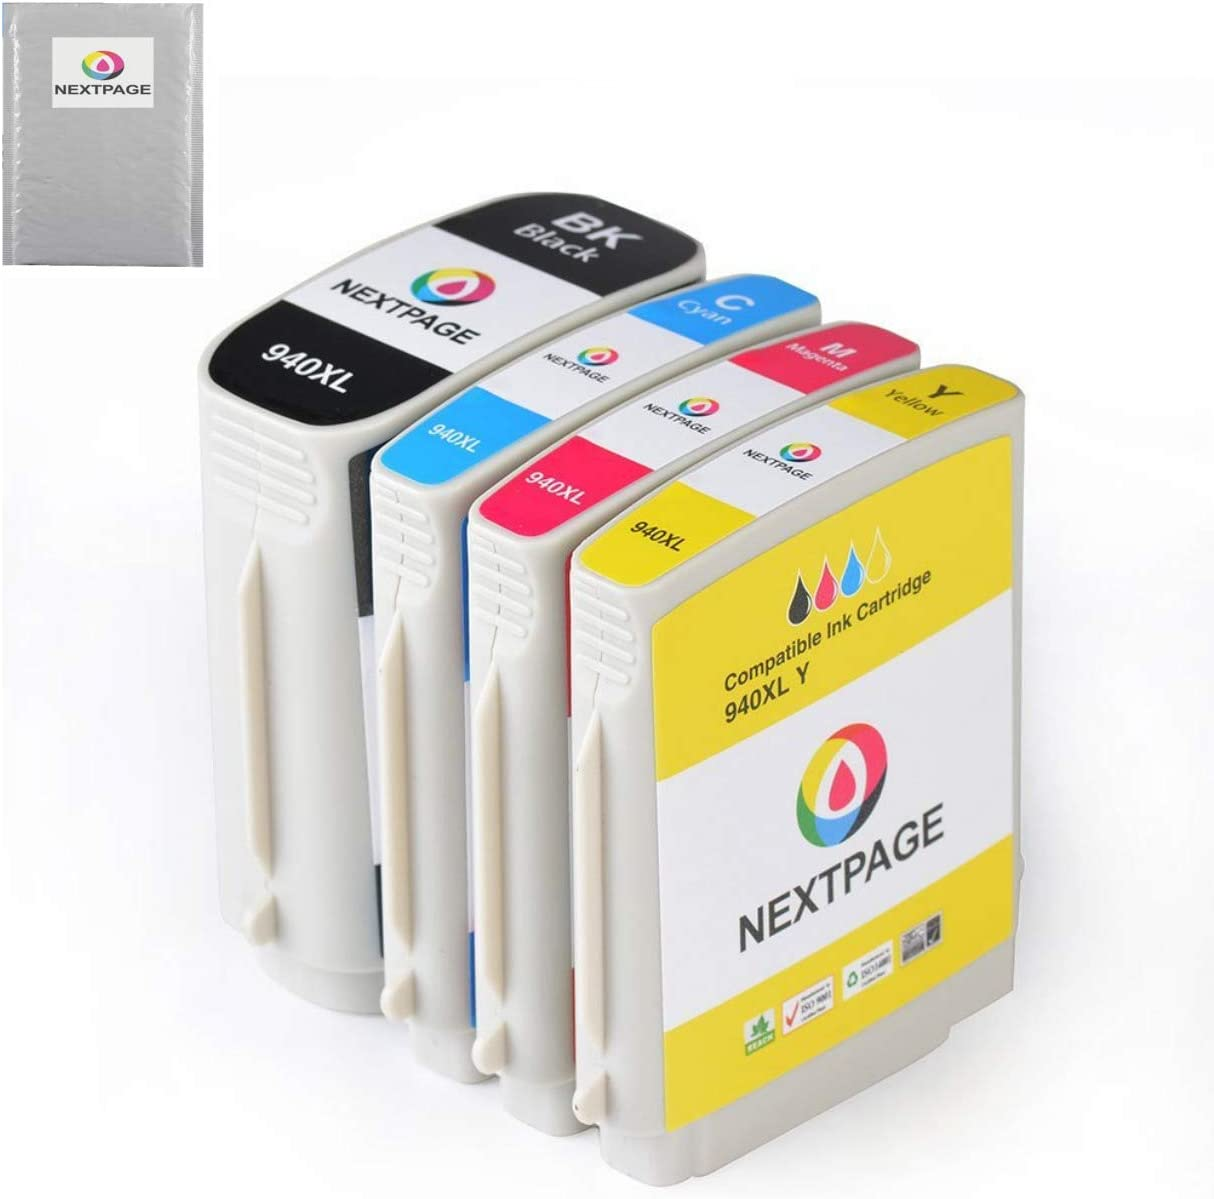 NEXTPAGE Compatible Ink Cartridge Replacement for HP 940 940XL 1 Set (1 Black, 1 Yellow, 1 Magenta, 1 Cyan), 4 Pack